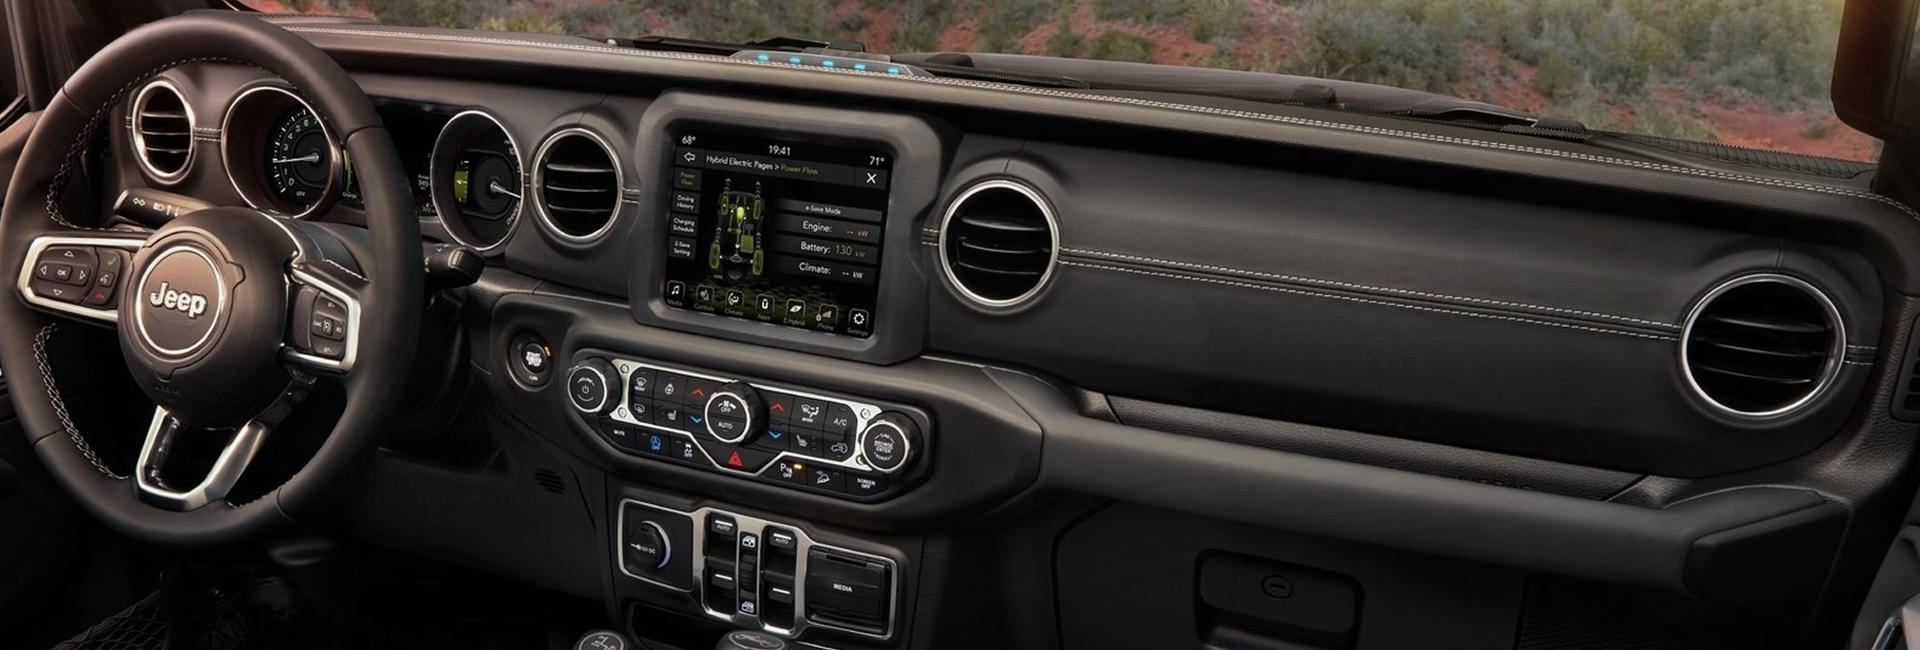 Full interior view of the 2021 Wrangler front dash